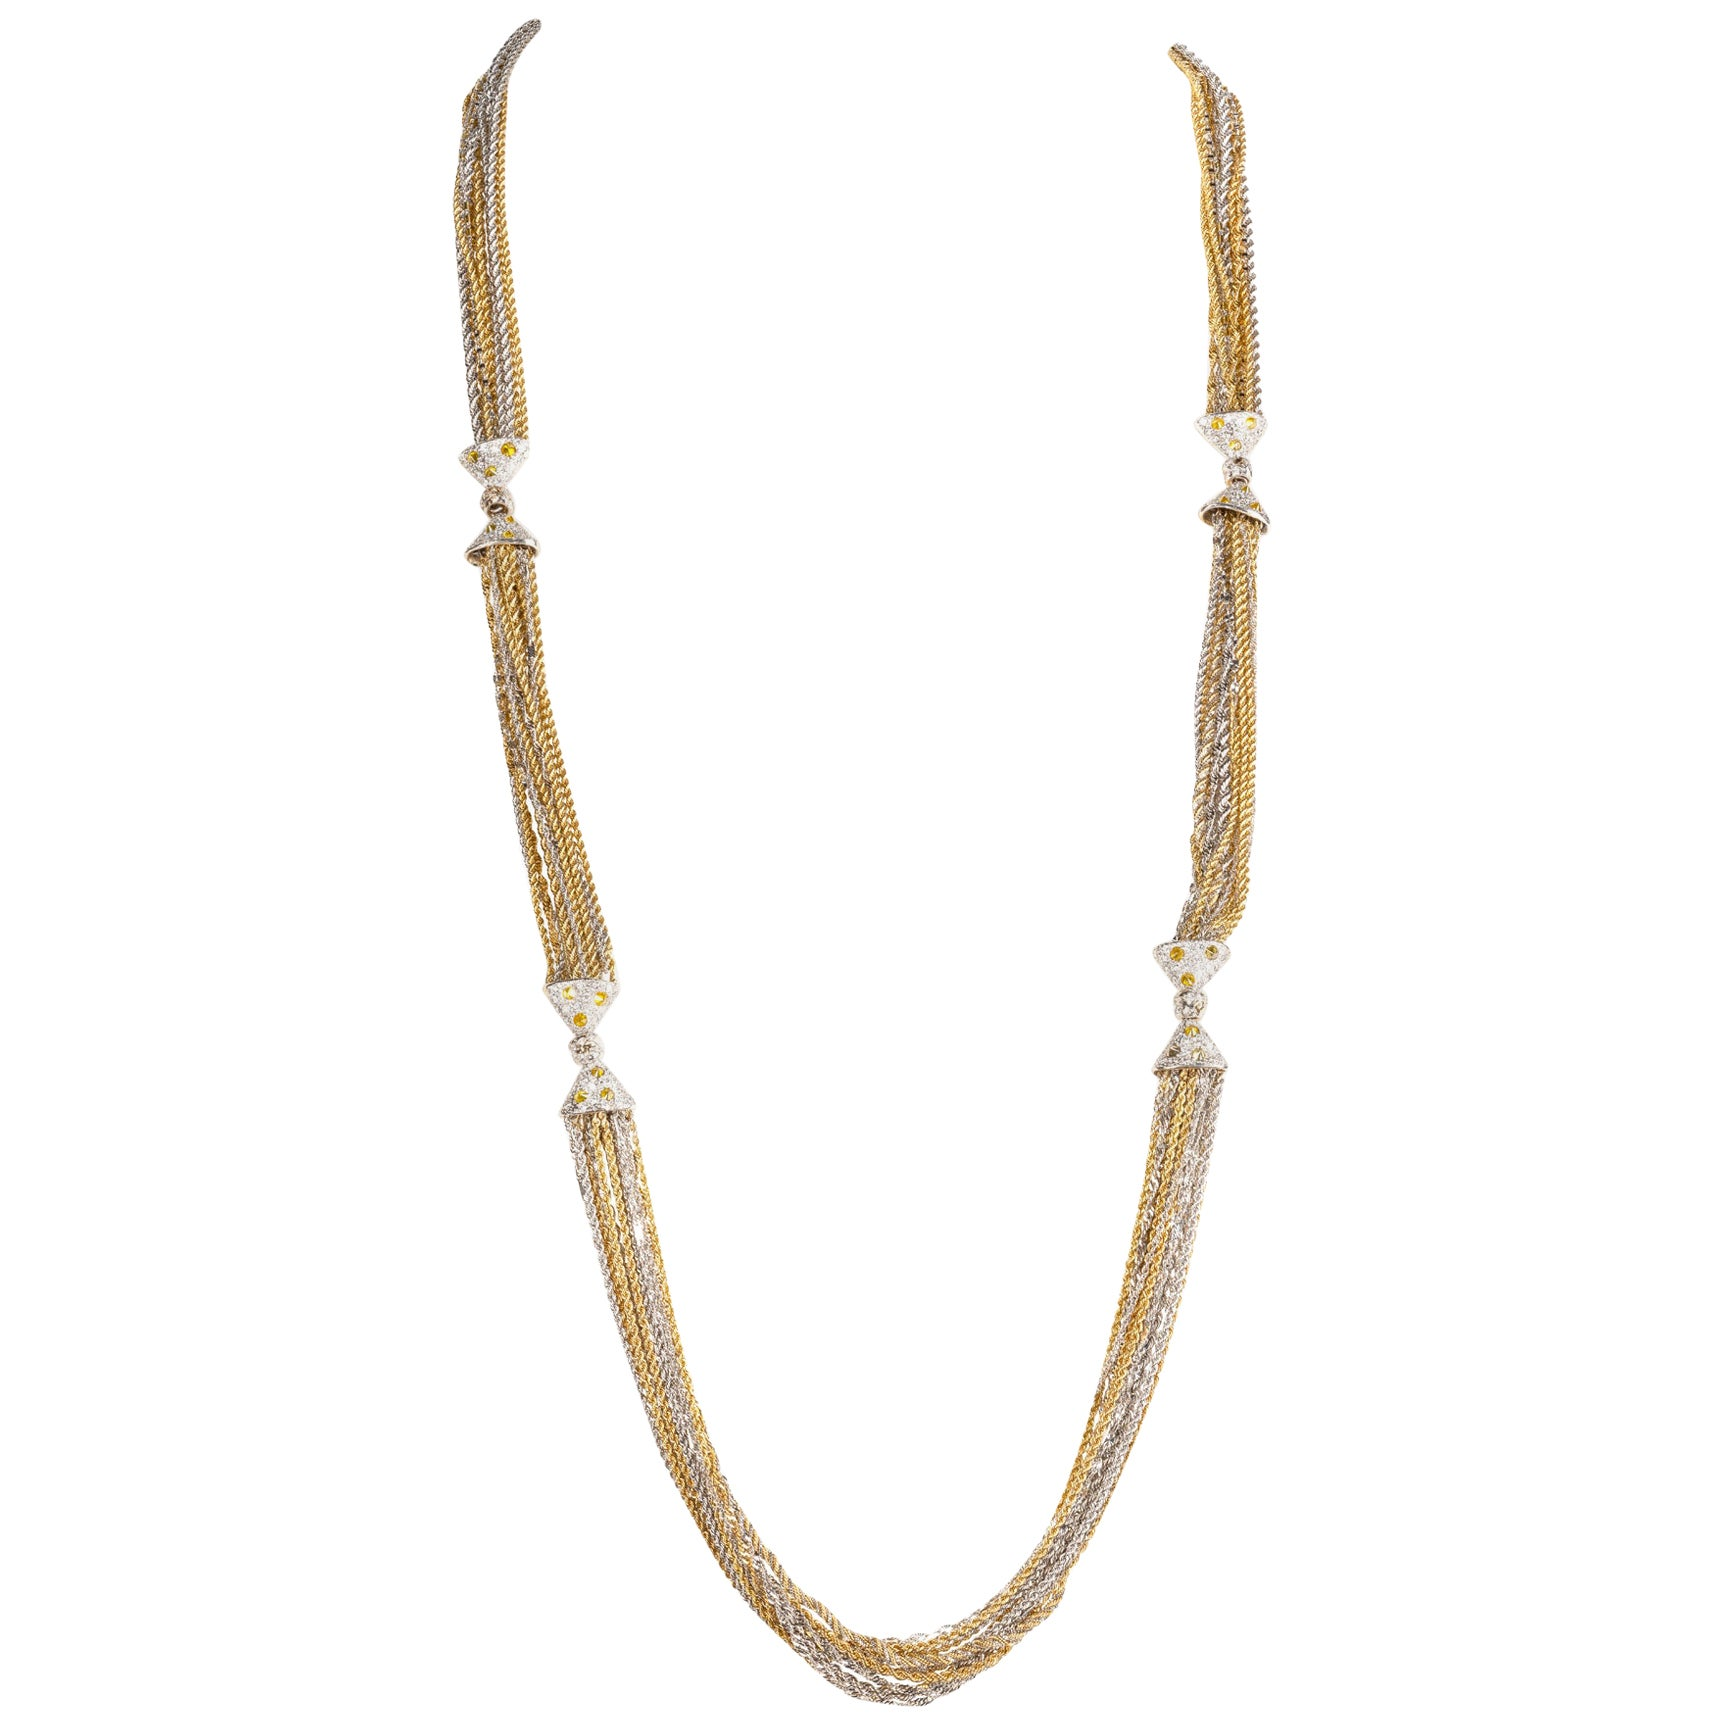 Long Necklace in White and Yellow Gold, with White and Fancy Yellow Diamonds